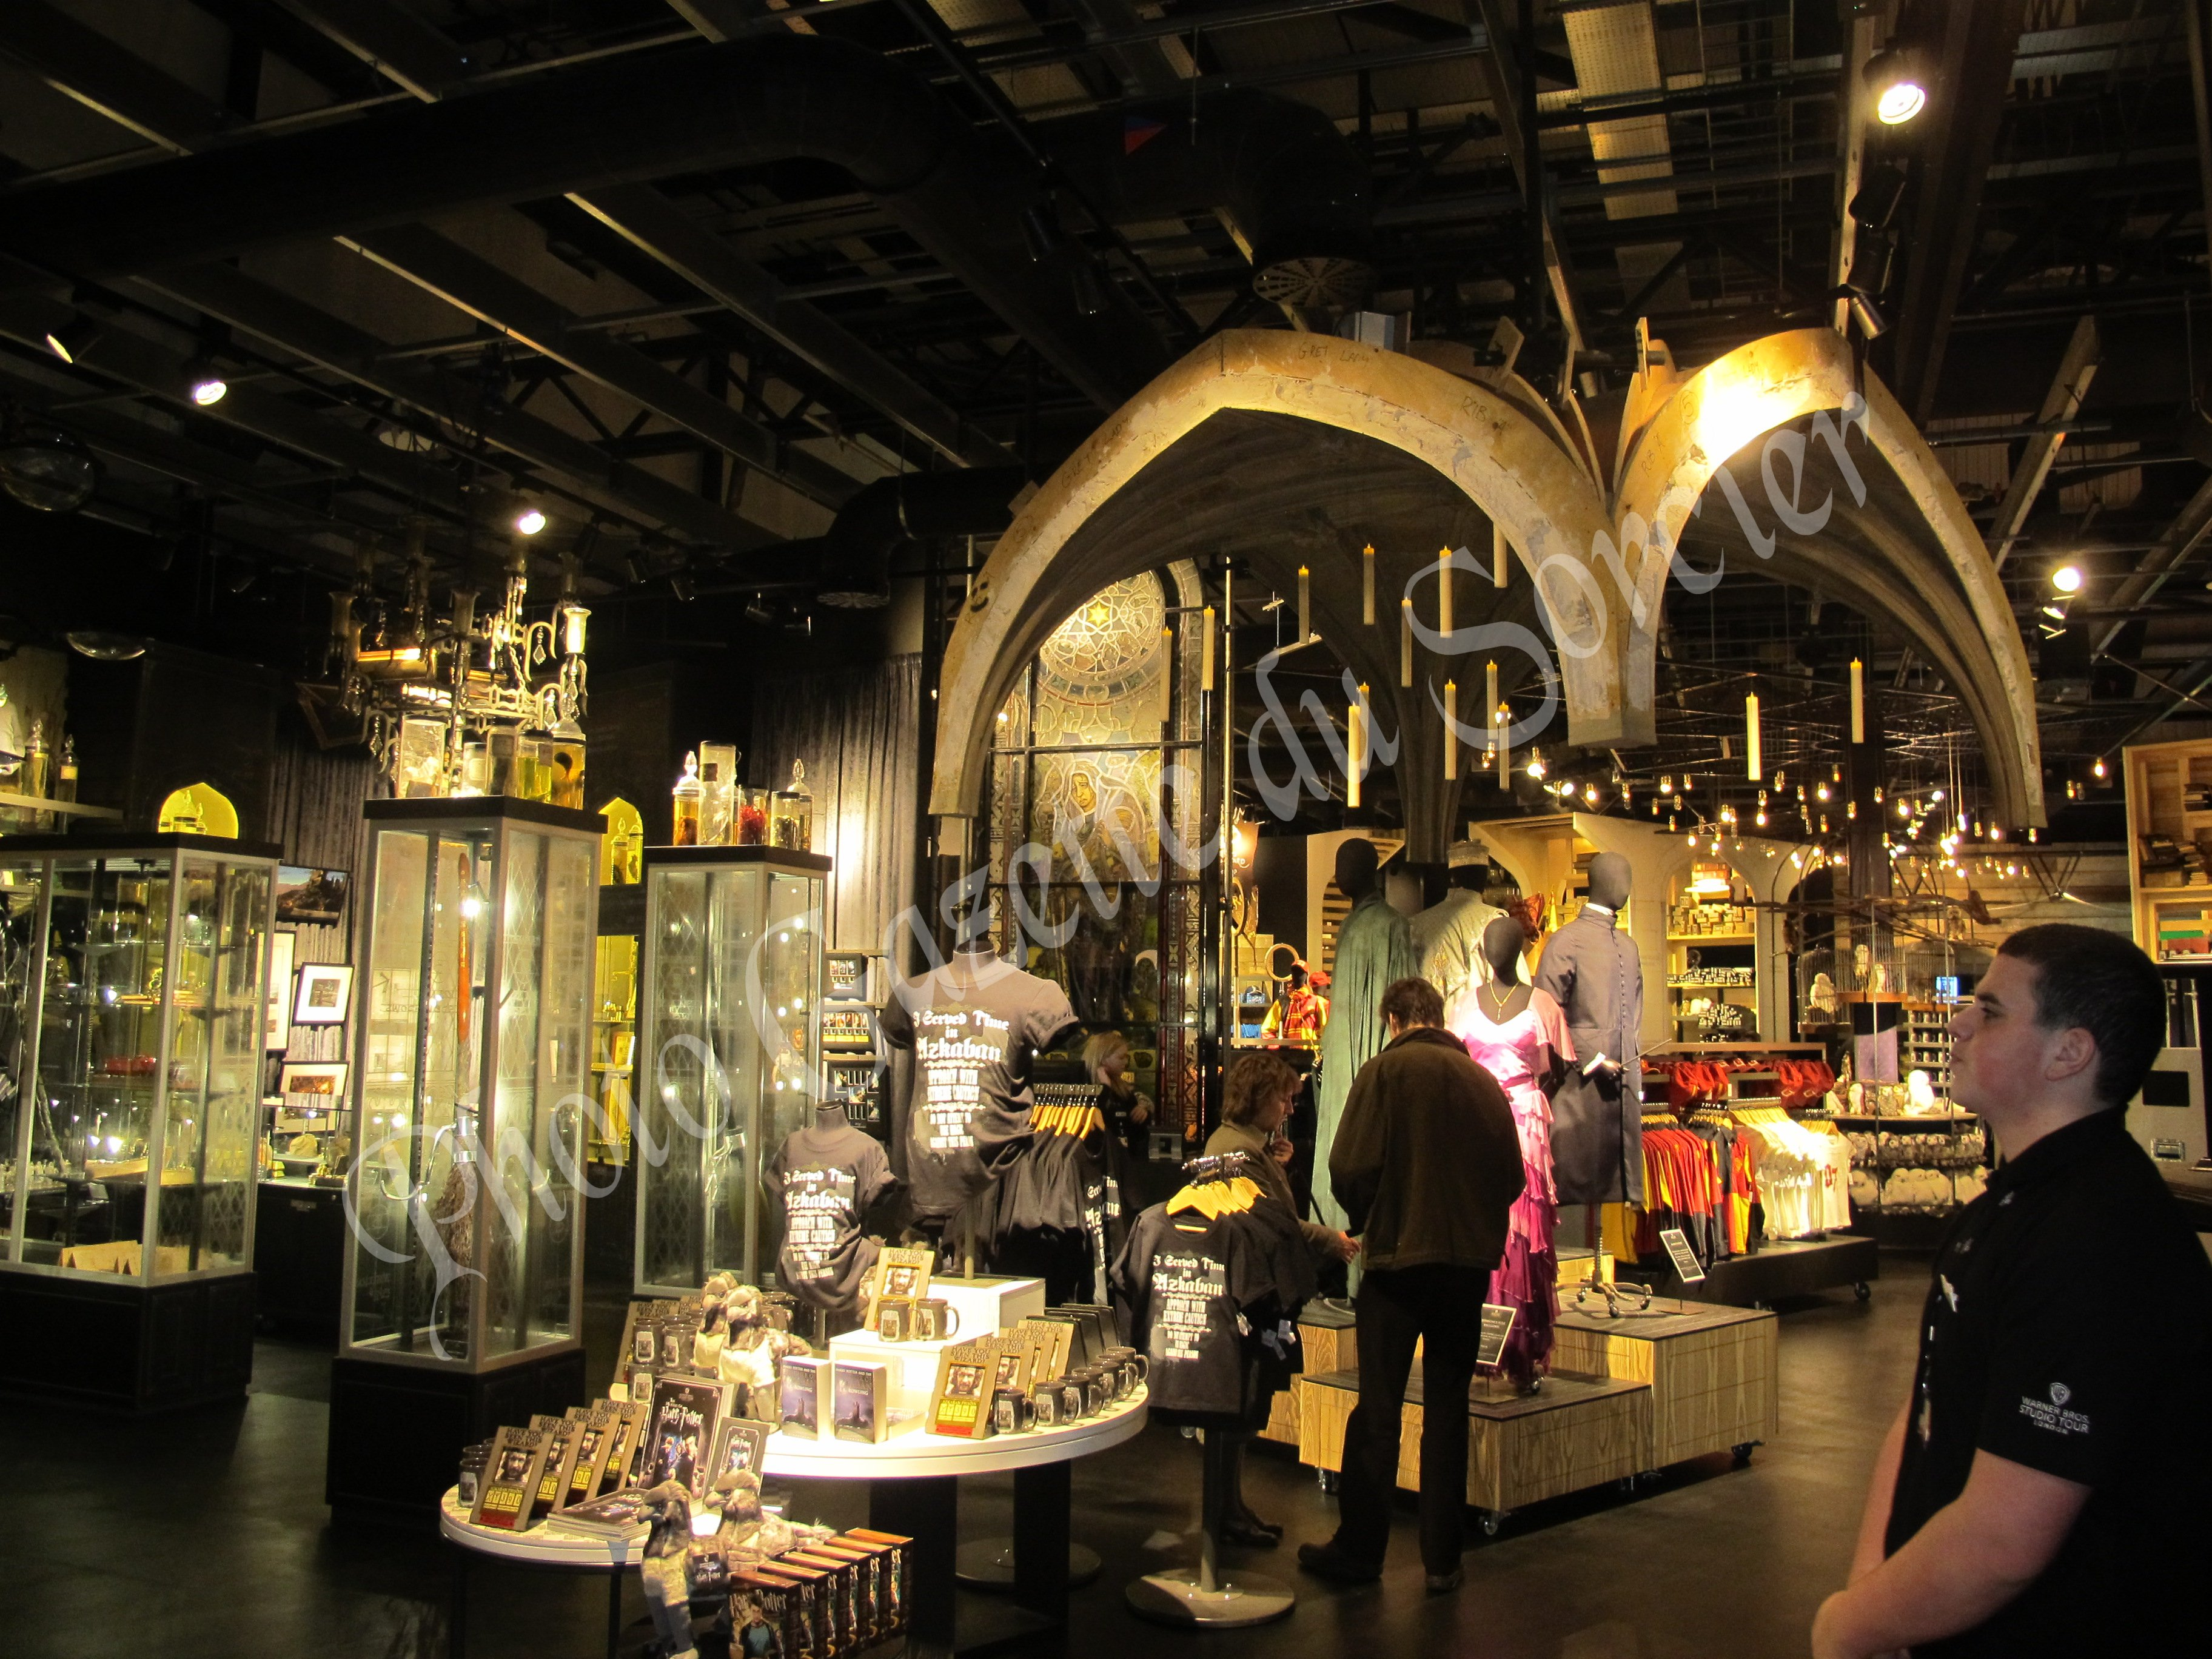 Intérieur de la boutique principale du Studio Tour Harry Potter de Londres